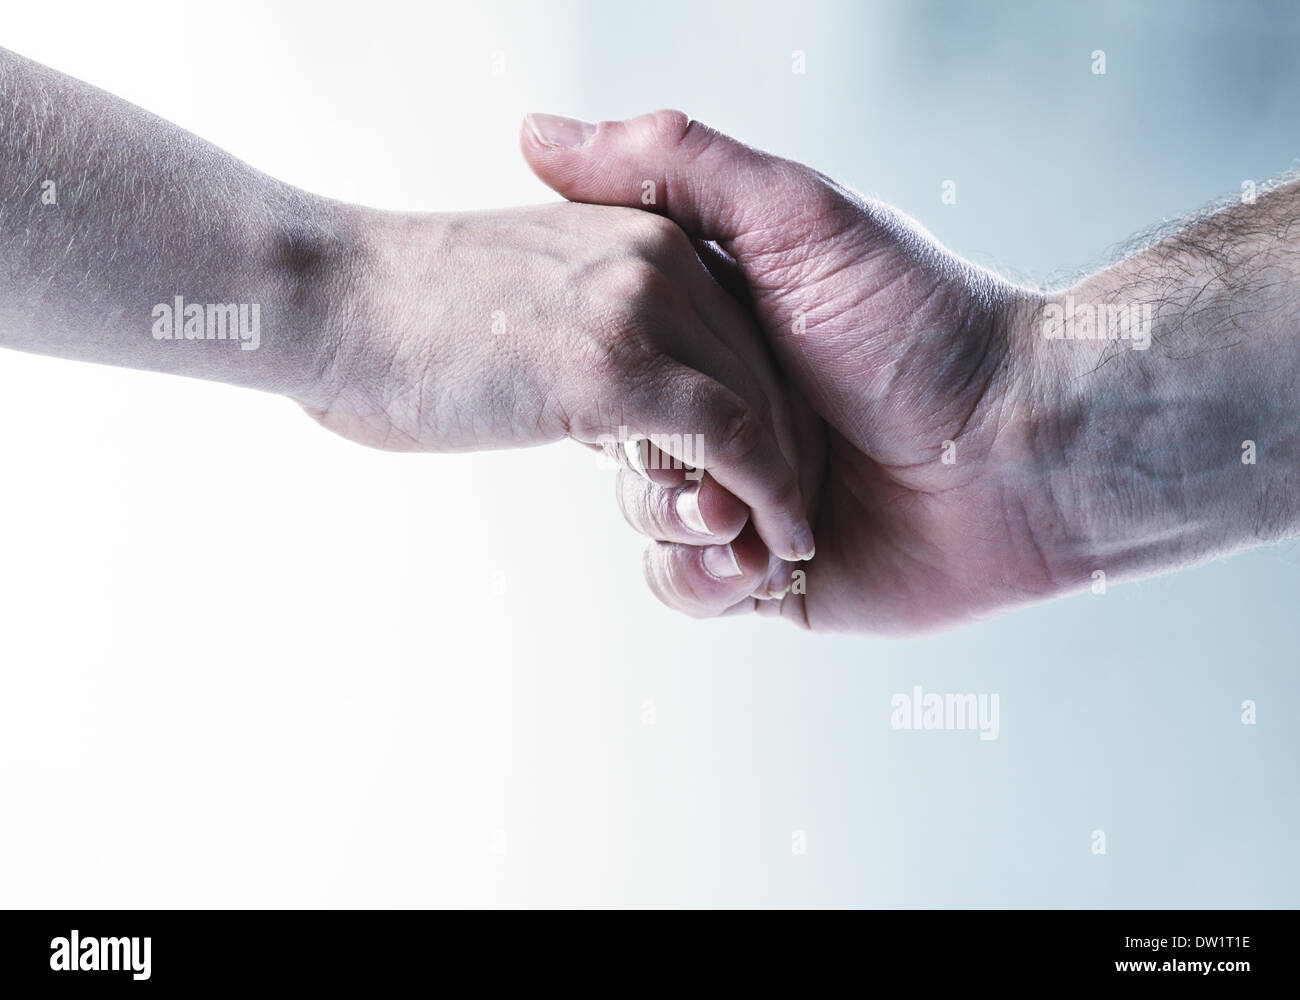 hands touch background - Stock Image